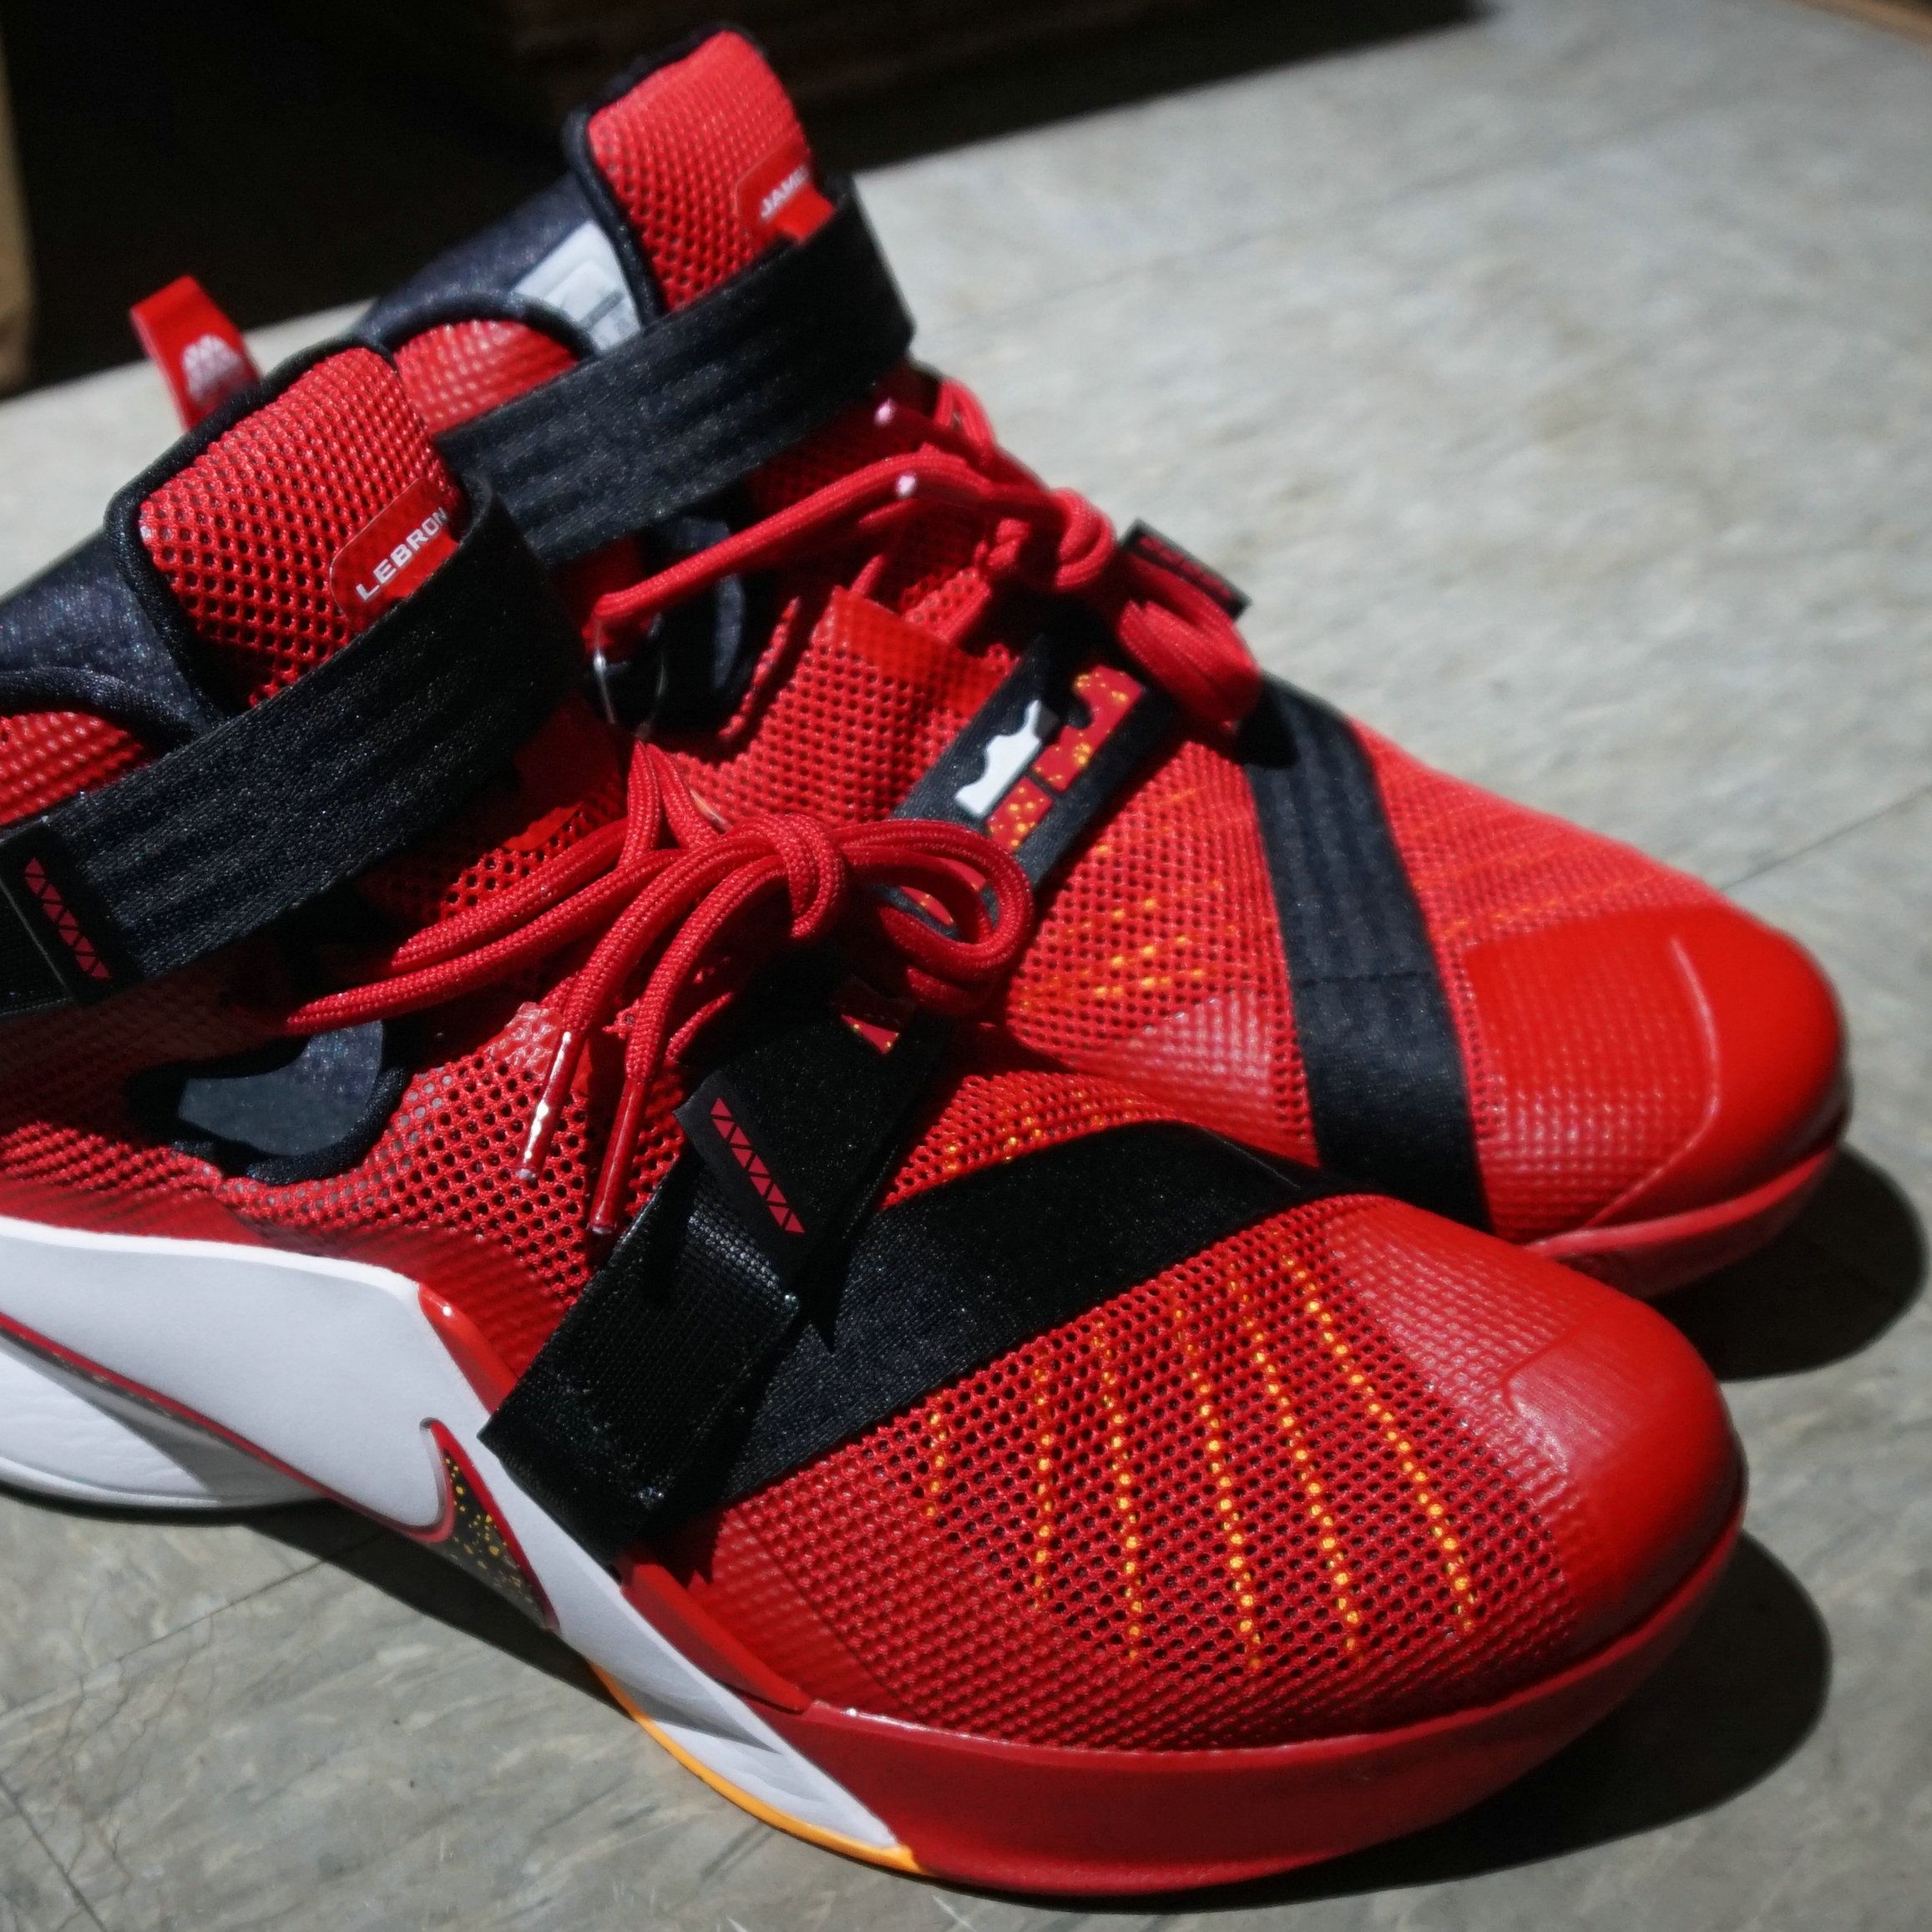 sports shoes c0b3a 4bba0 Nike LeBron Soldier 9 EP Nike LeBron Soldier 9 EP Varsity Red White (749420-